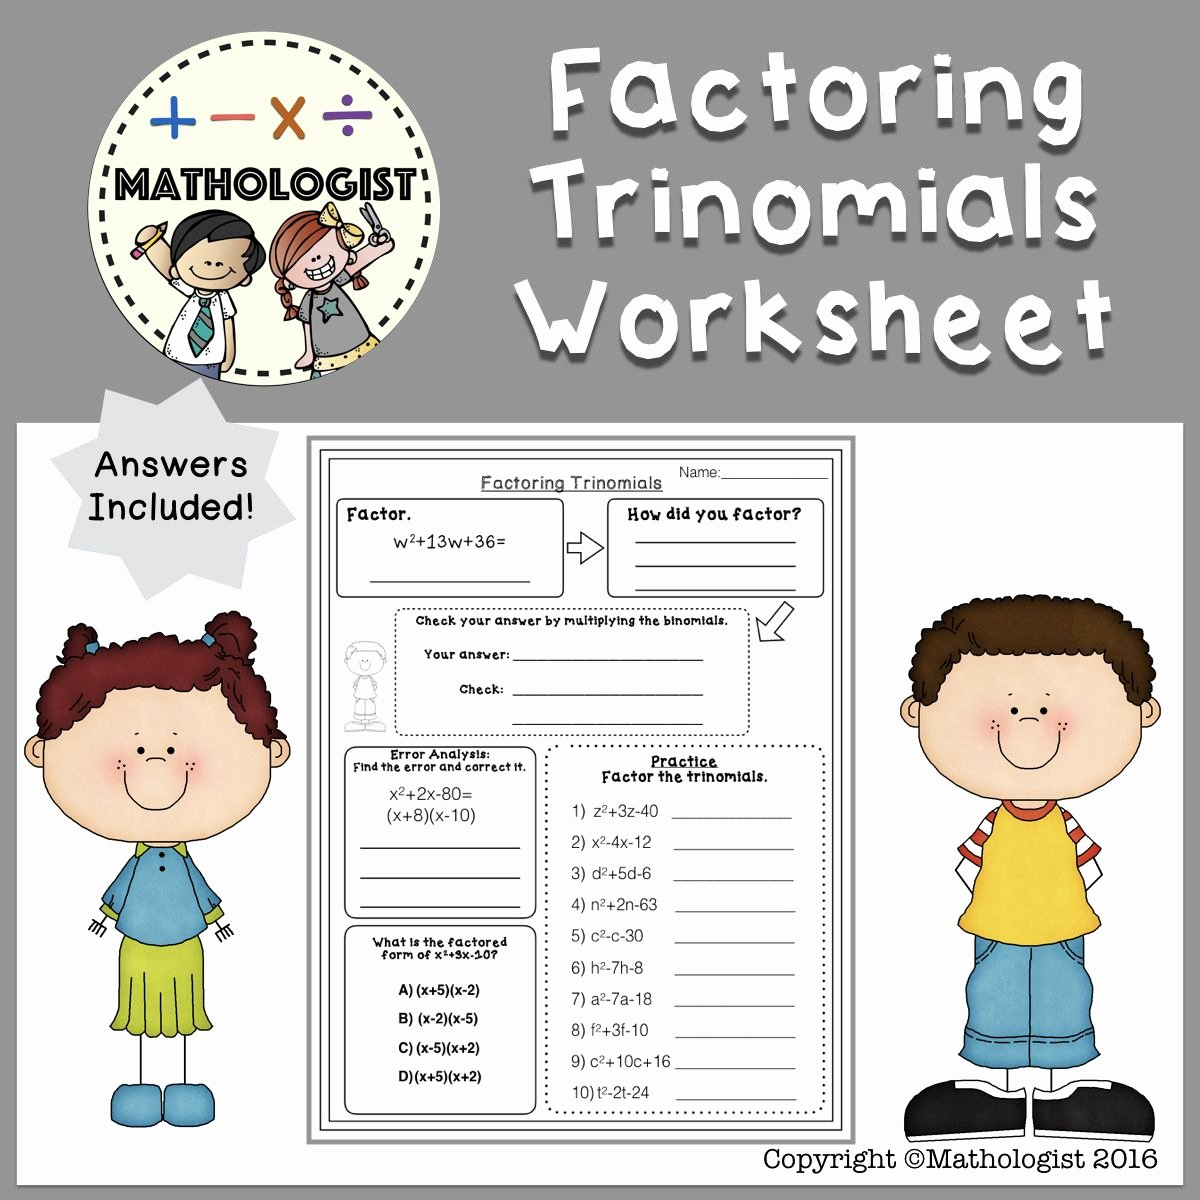 Factoring Trinomials Worksheet Pdf Lovely Factoring Trinomials Worksheet A=1 Algebra Homework